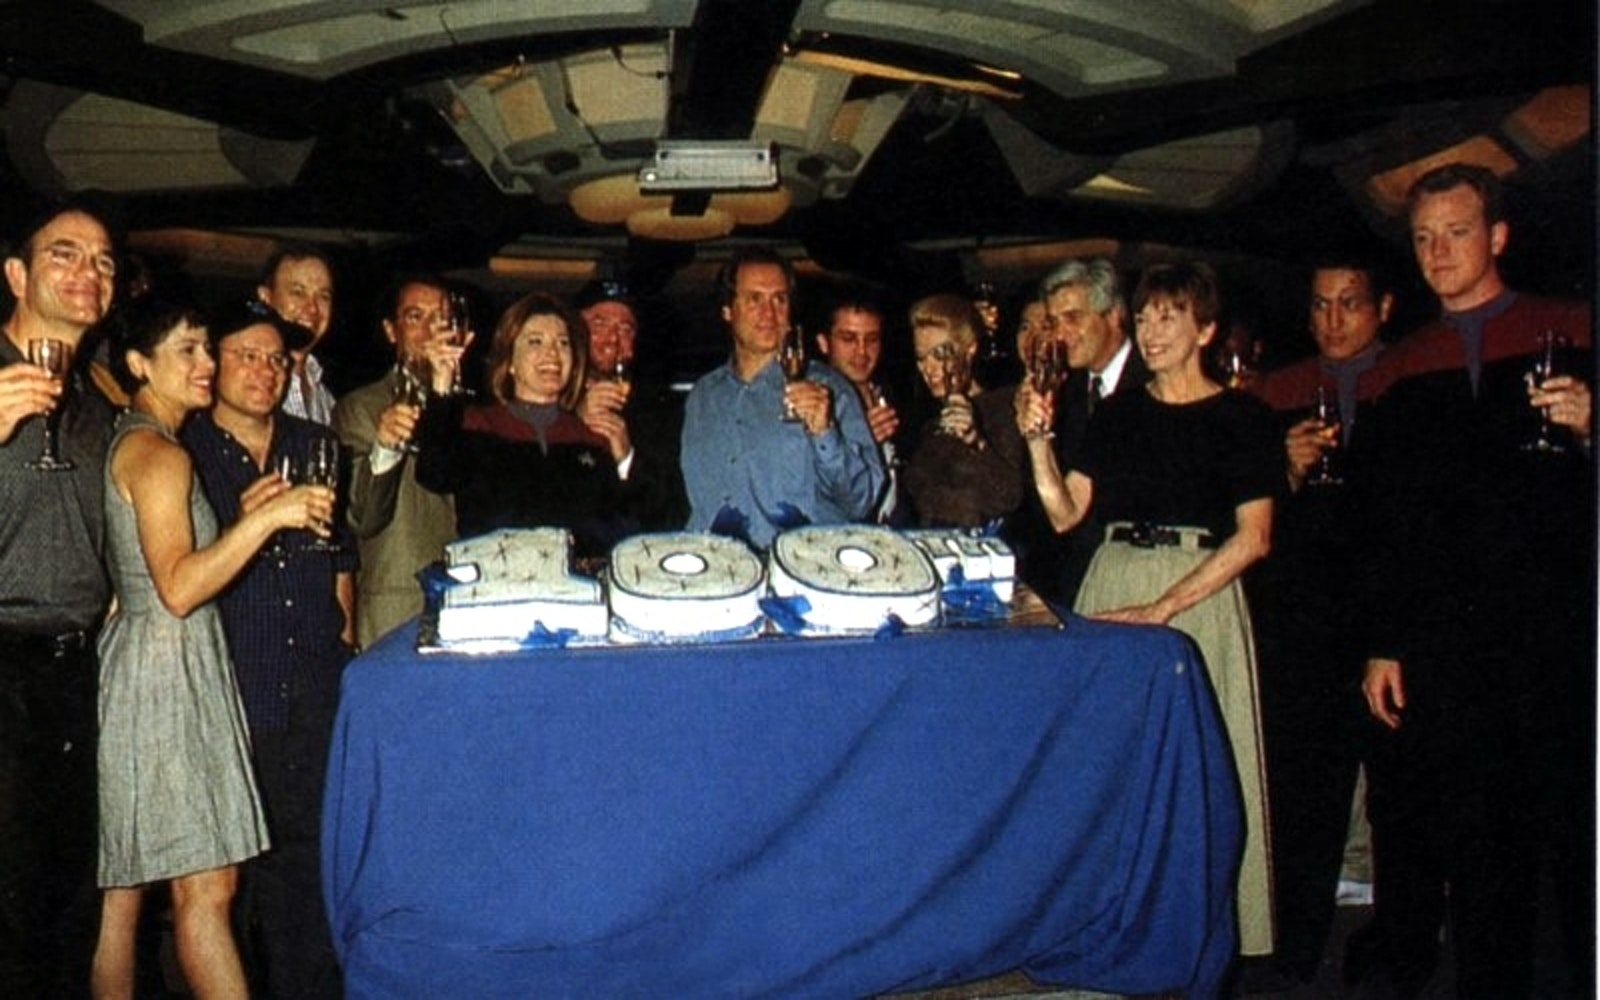 Rick Berman, Jeri Taylor, and the cast and crew of 'Voyager' celebrate their 100th episode